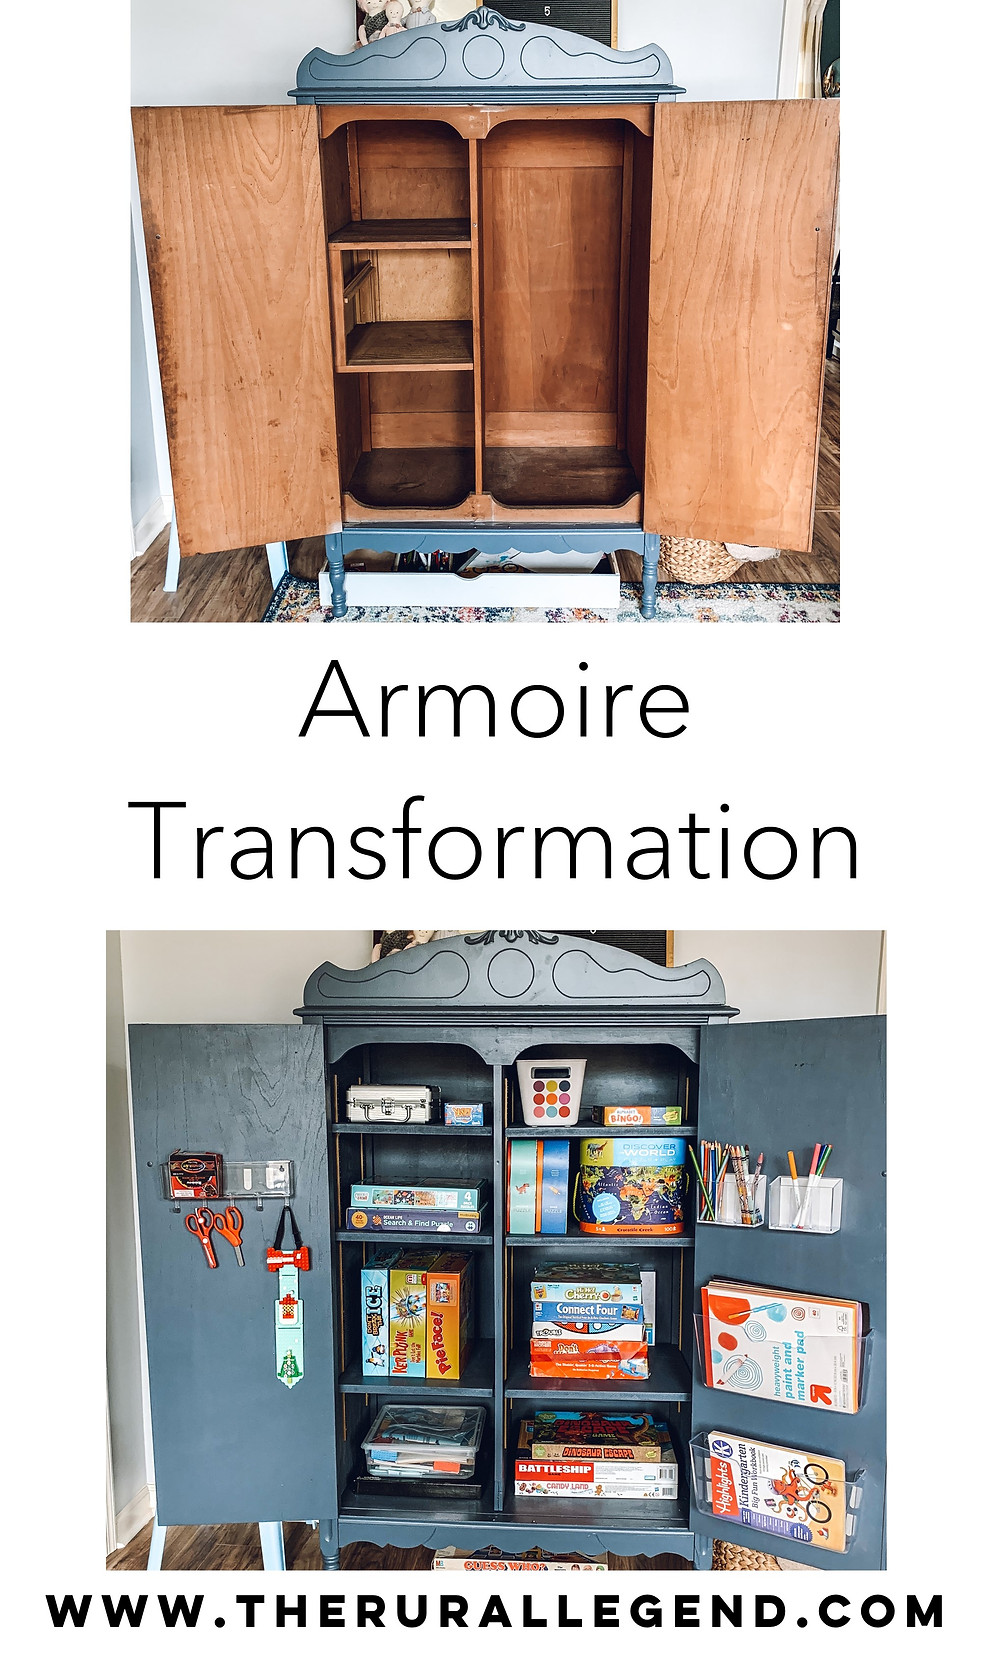 Playroom makeover, playroom storage ideas, antique armoire, refinishing antique furniture, armoire makeover, new uses for armoire, toy storage, lego storage ideas, playroom design, playroom inspiration, playroom styling, art station ideas, storage ideas for toys, kid spaces, kid play space inspiration, best kids toys, educational kids toys, how to refinish antique furniture, how to refinish veneer furniture, armoire transformation, diy home improvement ideas, easy diy home improvement, kid friendly spaces, kid friendly storage, the rural legend